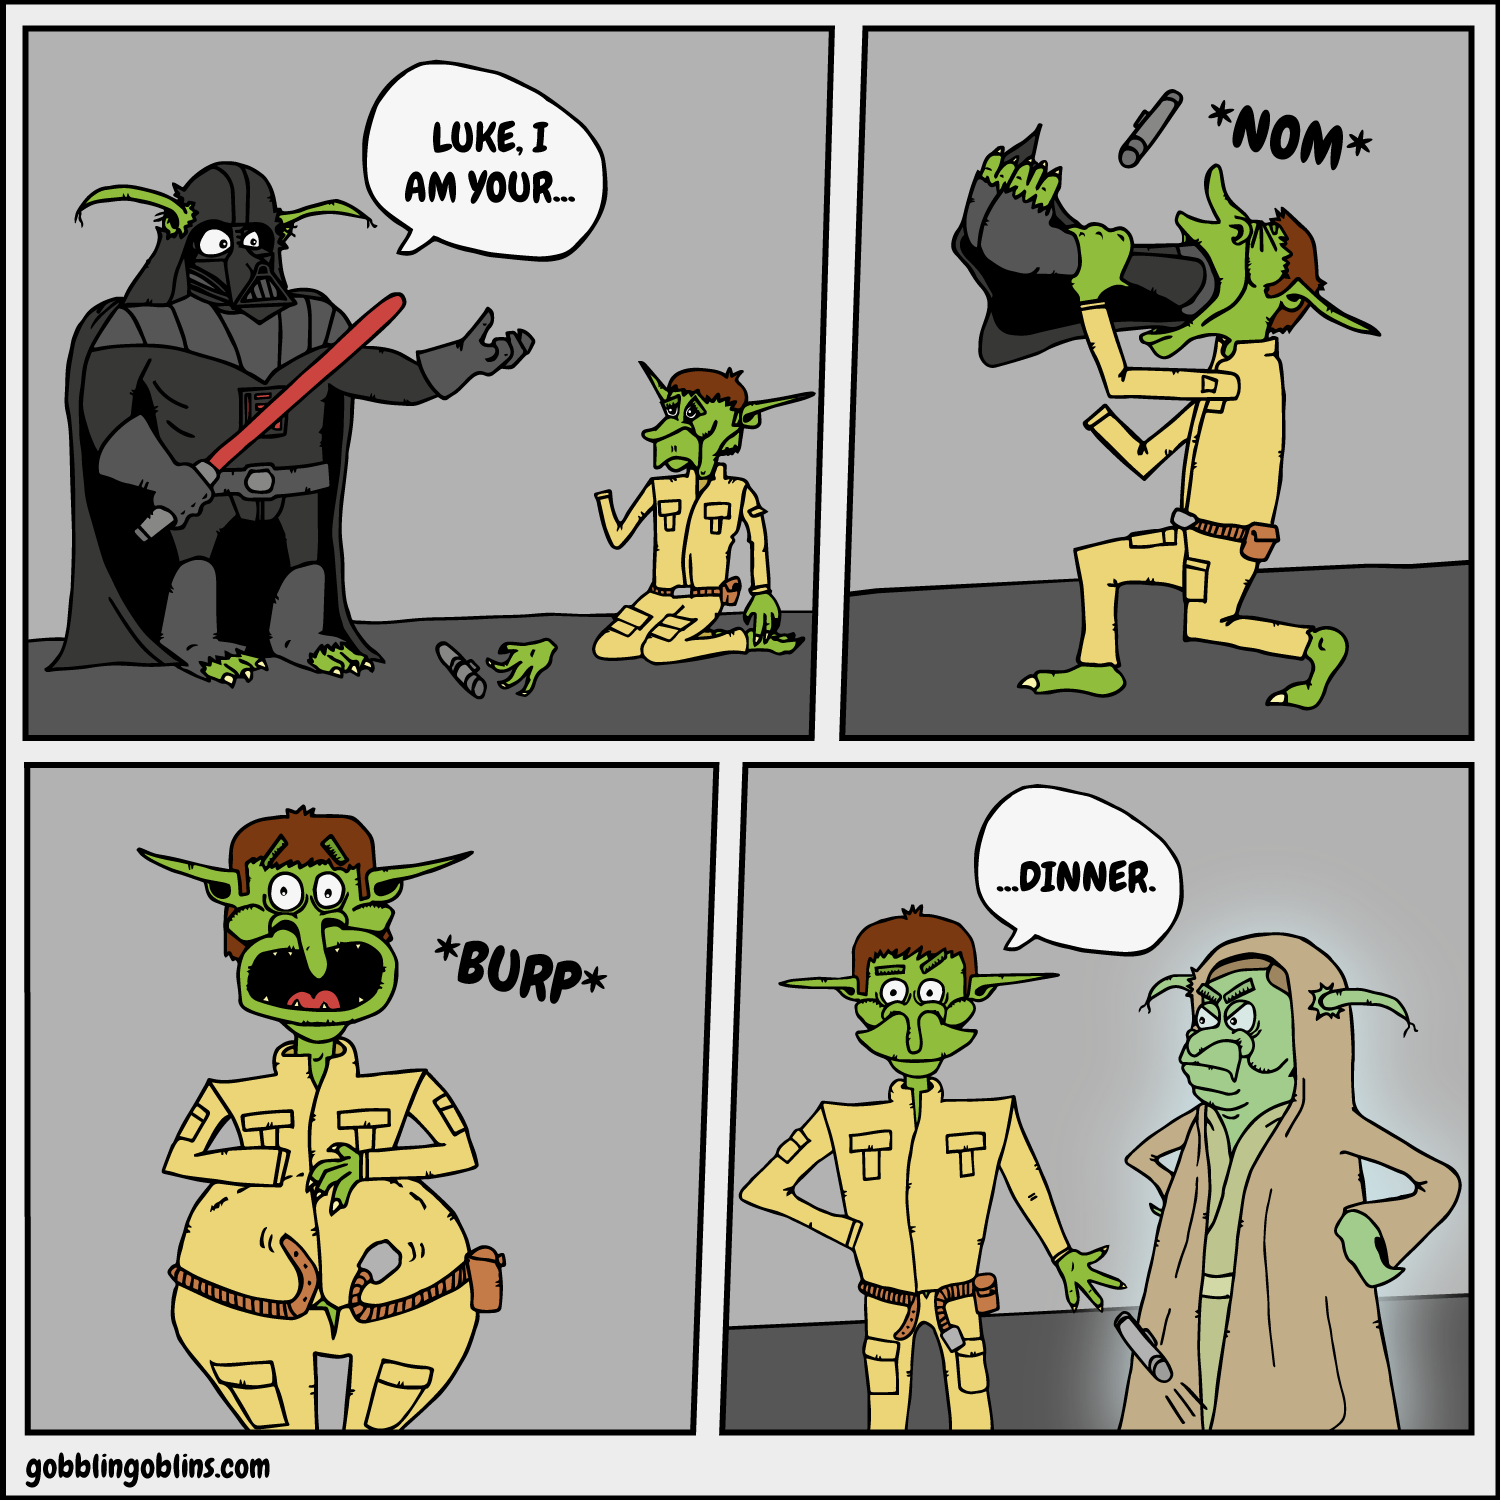 May The Fourth Be With You - a comic by Gobblin' Goblins